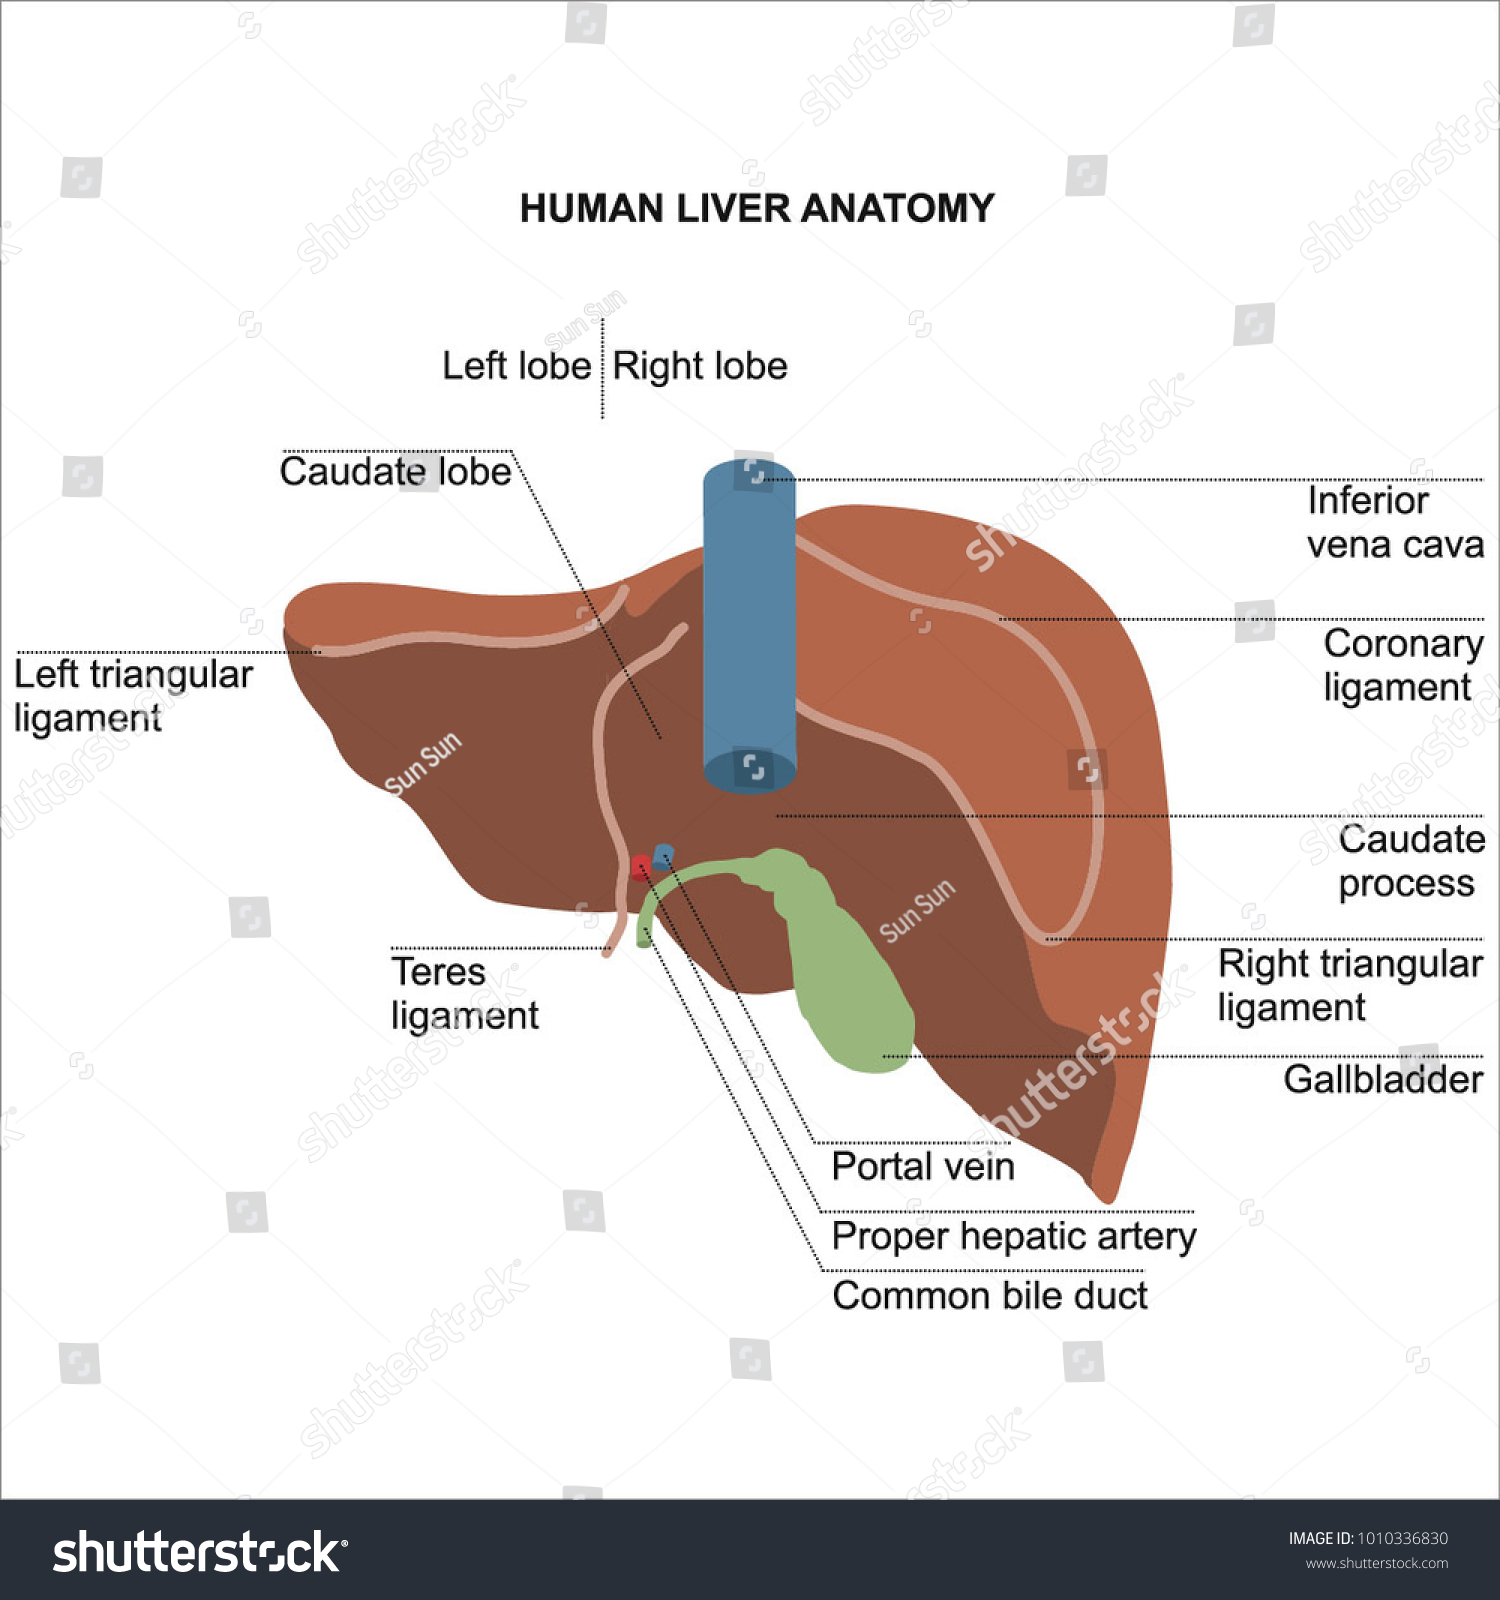 Human Liver Anatomy Diagram Student Dissertation Stock Vector (2018 ...